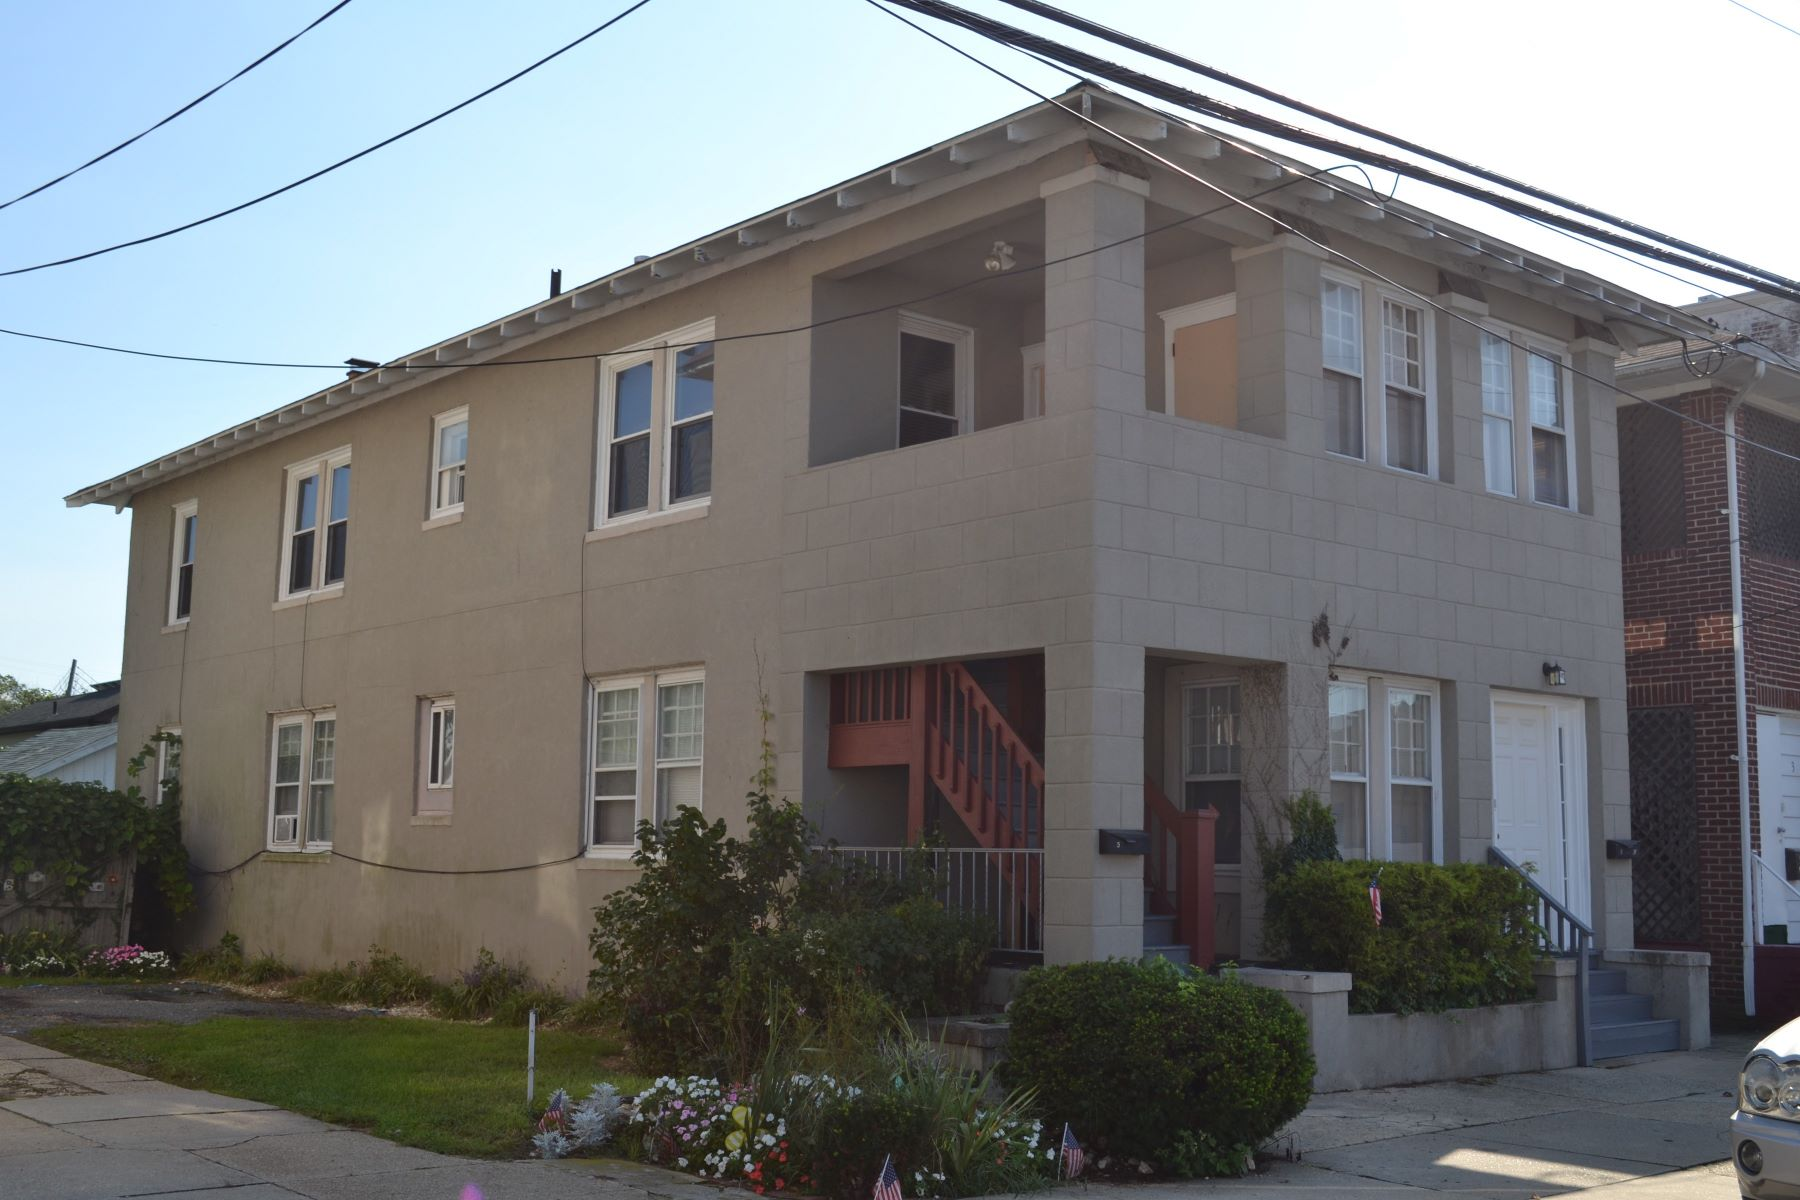 Duplex for Sale at 5 N Newport Ave Ventnor, New Jersey 08401 United States